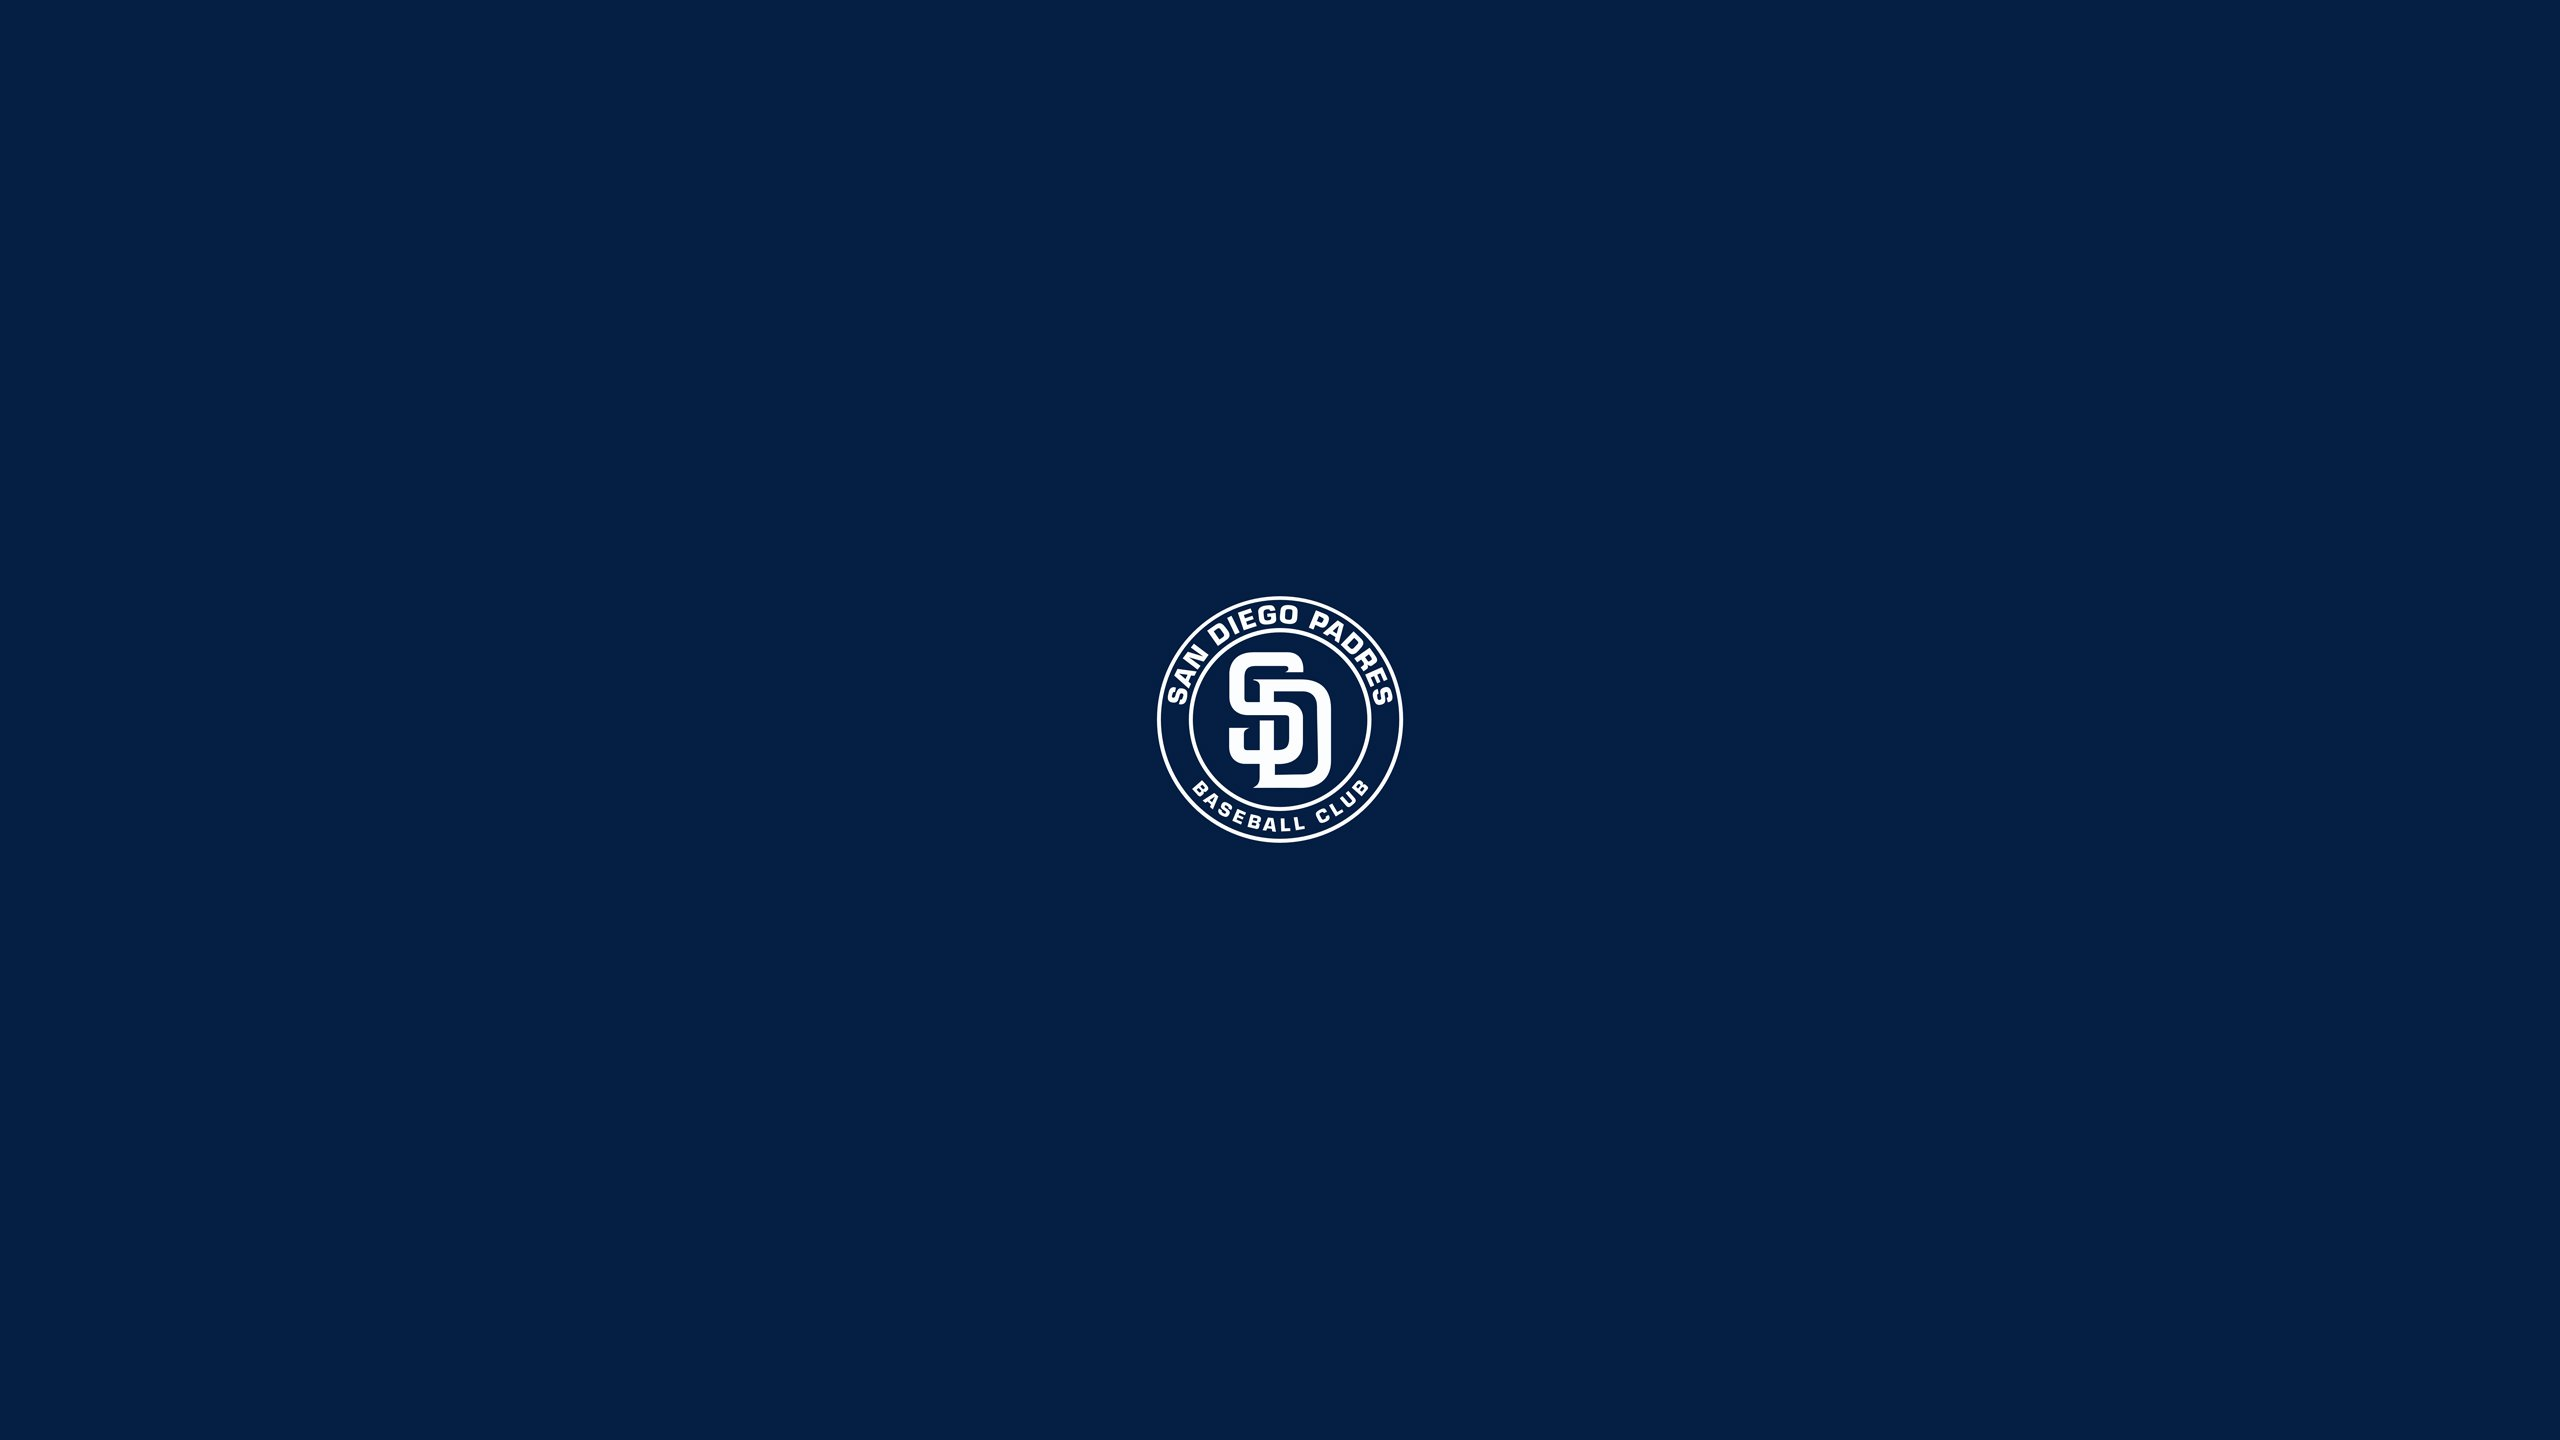 SAN DIEGO PADRES mlb baseball 11 wallpaper background 2560x1440